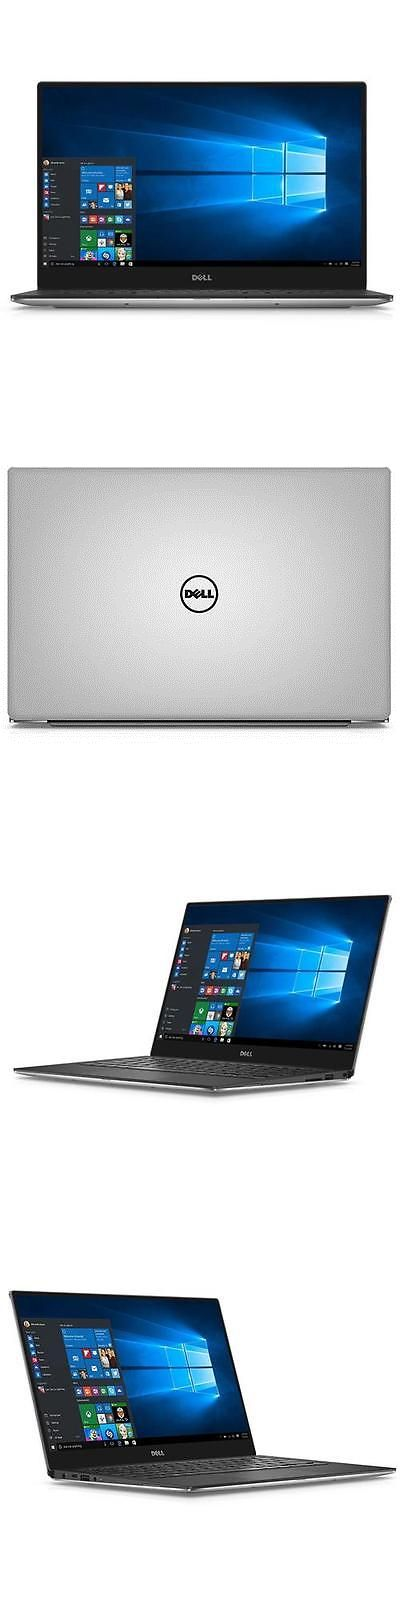 general for sale: Dell Xps 13.3 Quad Hd+ Infinityedge Touch Notebook Intel Core I7-7500U 2.7Ghz -> BUY IT NOW ONLY: $1299.99 on eBay!